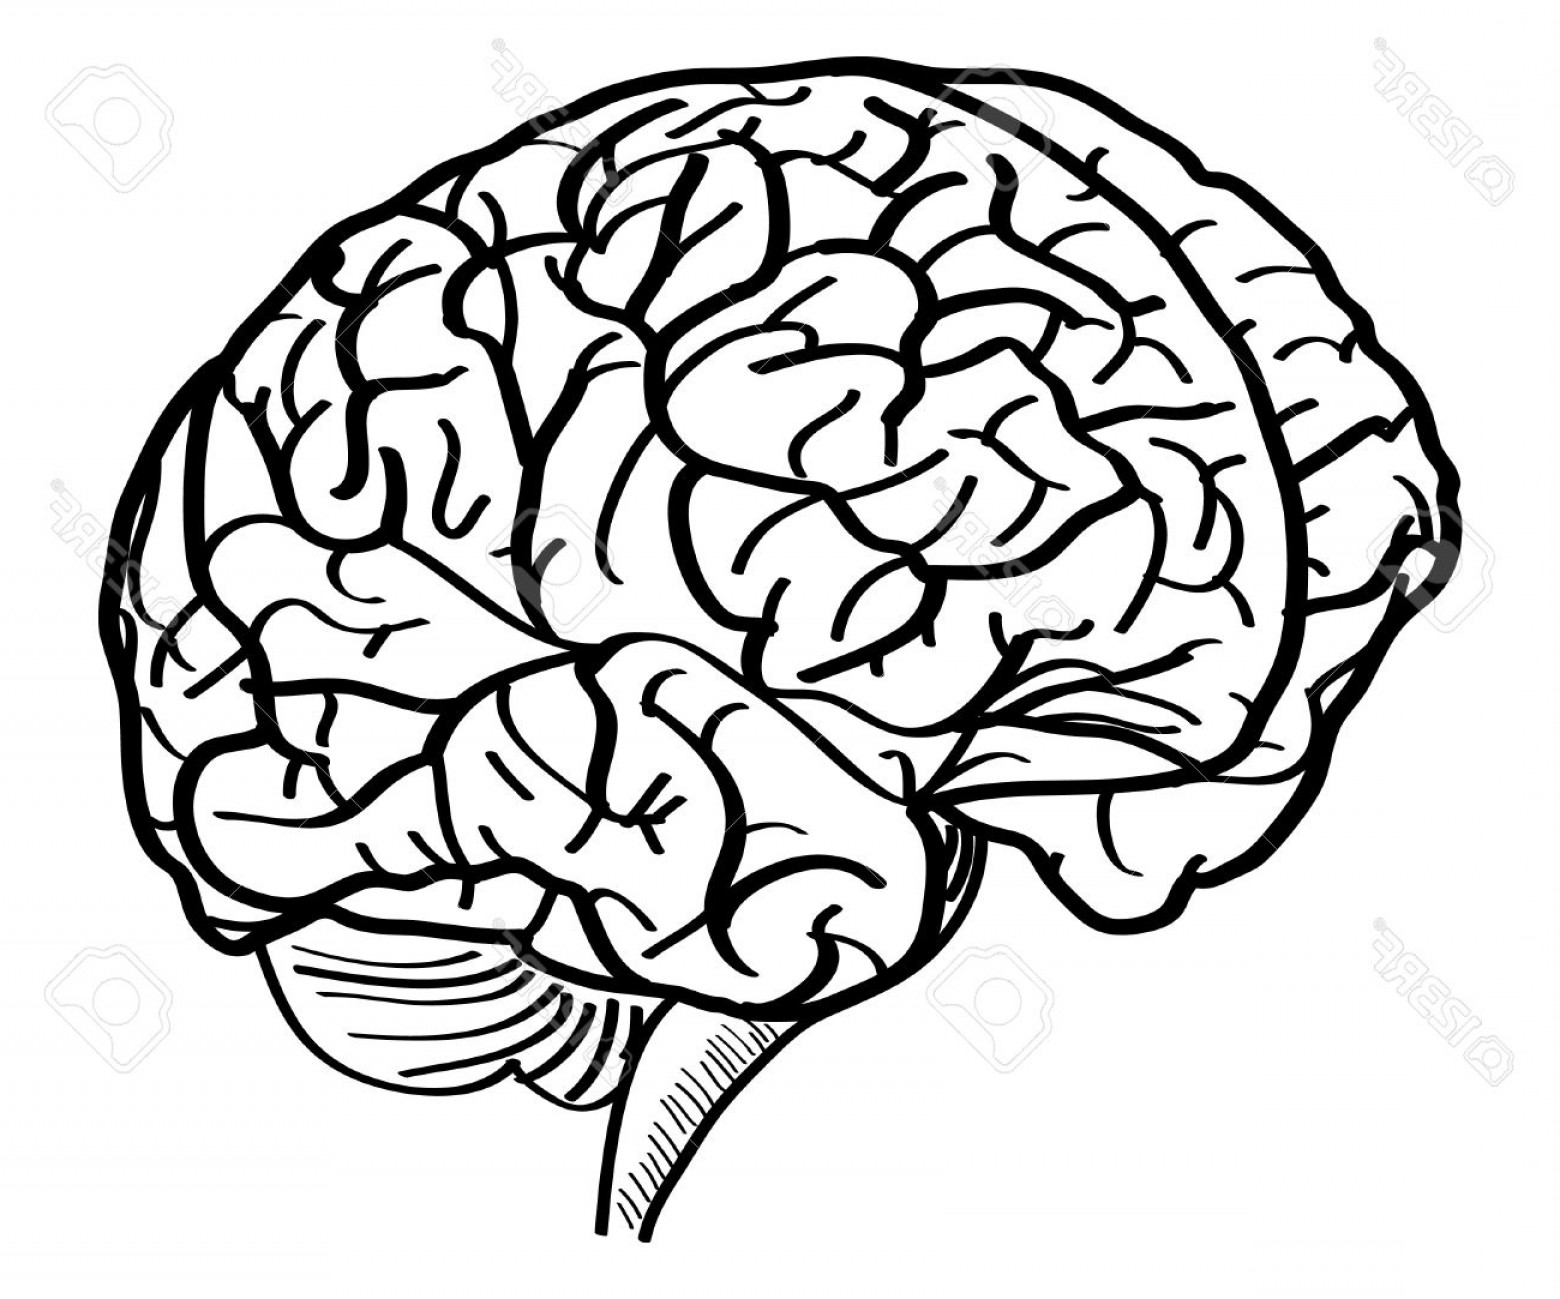 Brain Vector Art: Photohuman Brain Vector Outline Sketched Up Vector Illustration